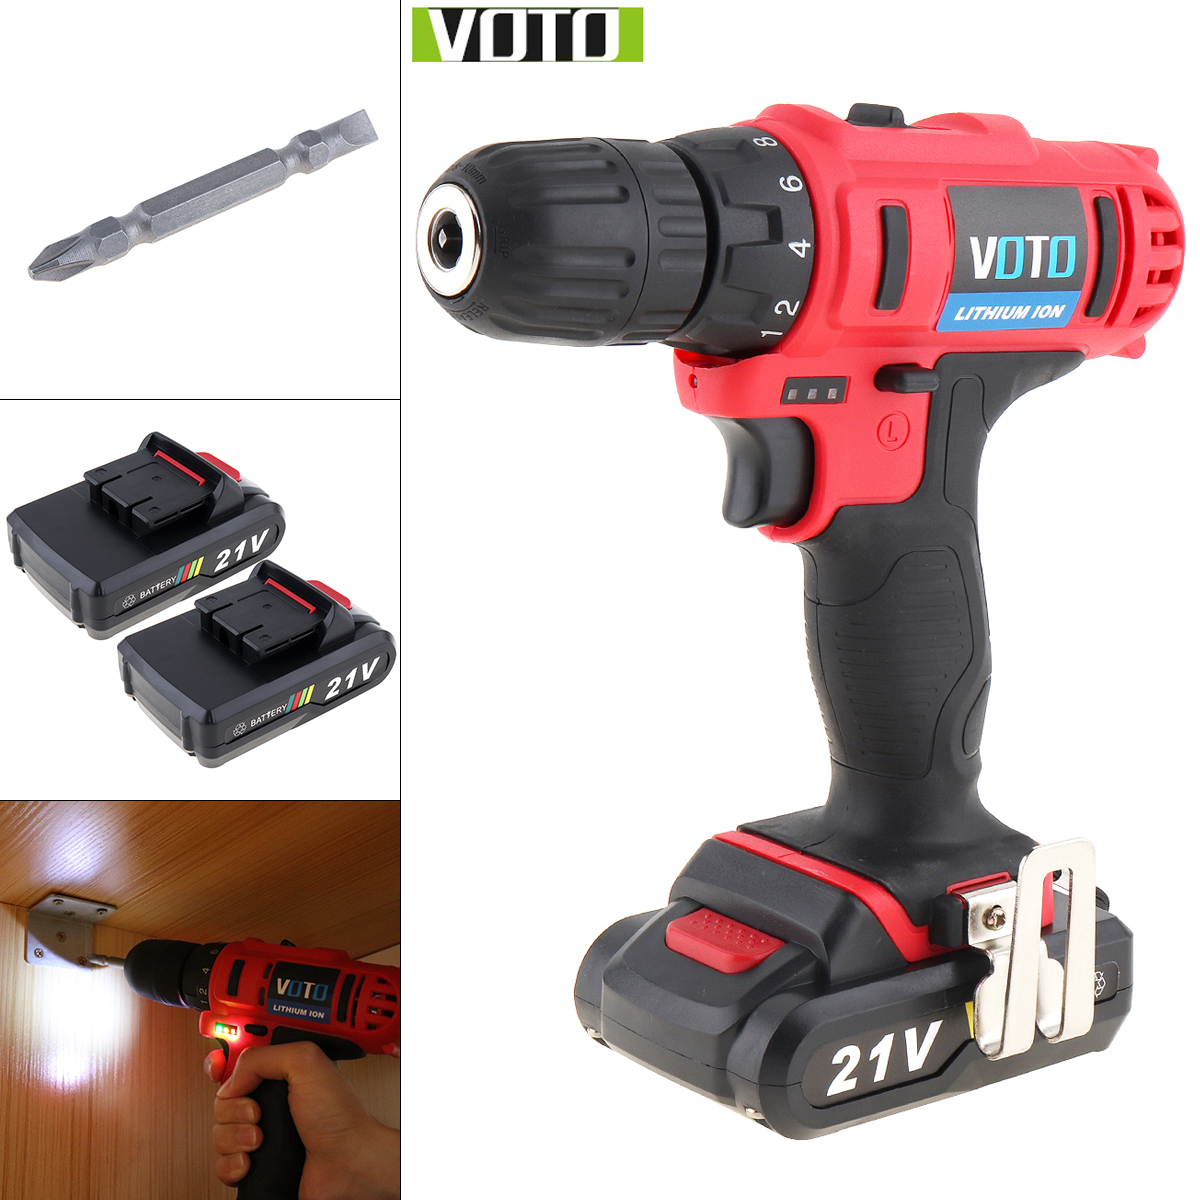 VOTO AC 100 - 240V Cordless 21V Two-speed Electric Screwdriver / Drill With Max 2 Lithium Batteries And Power Display